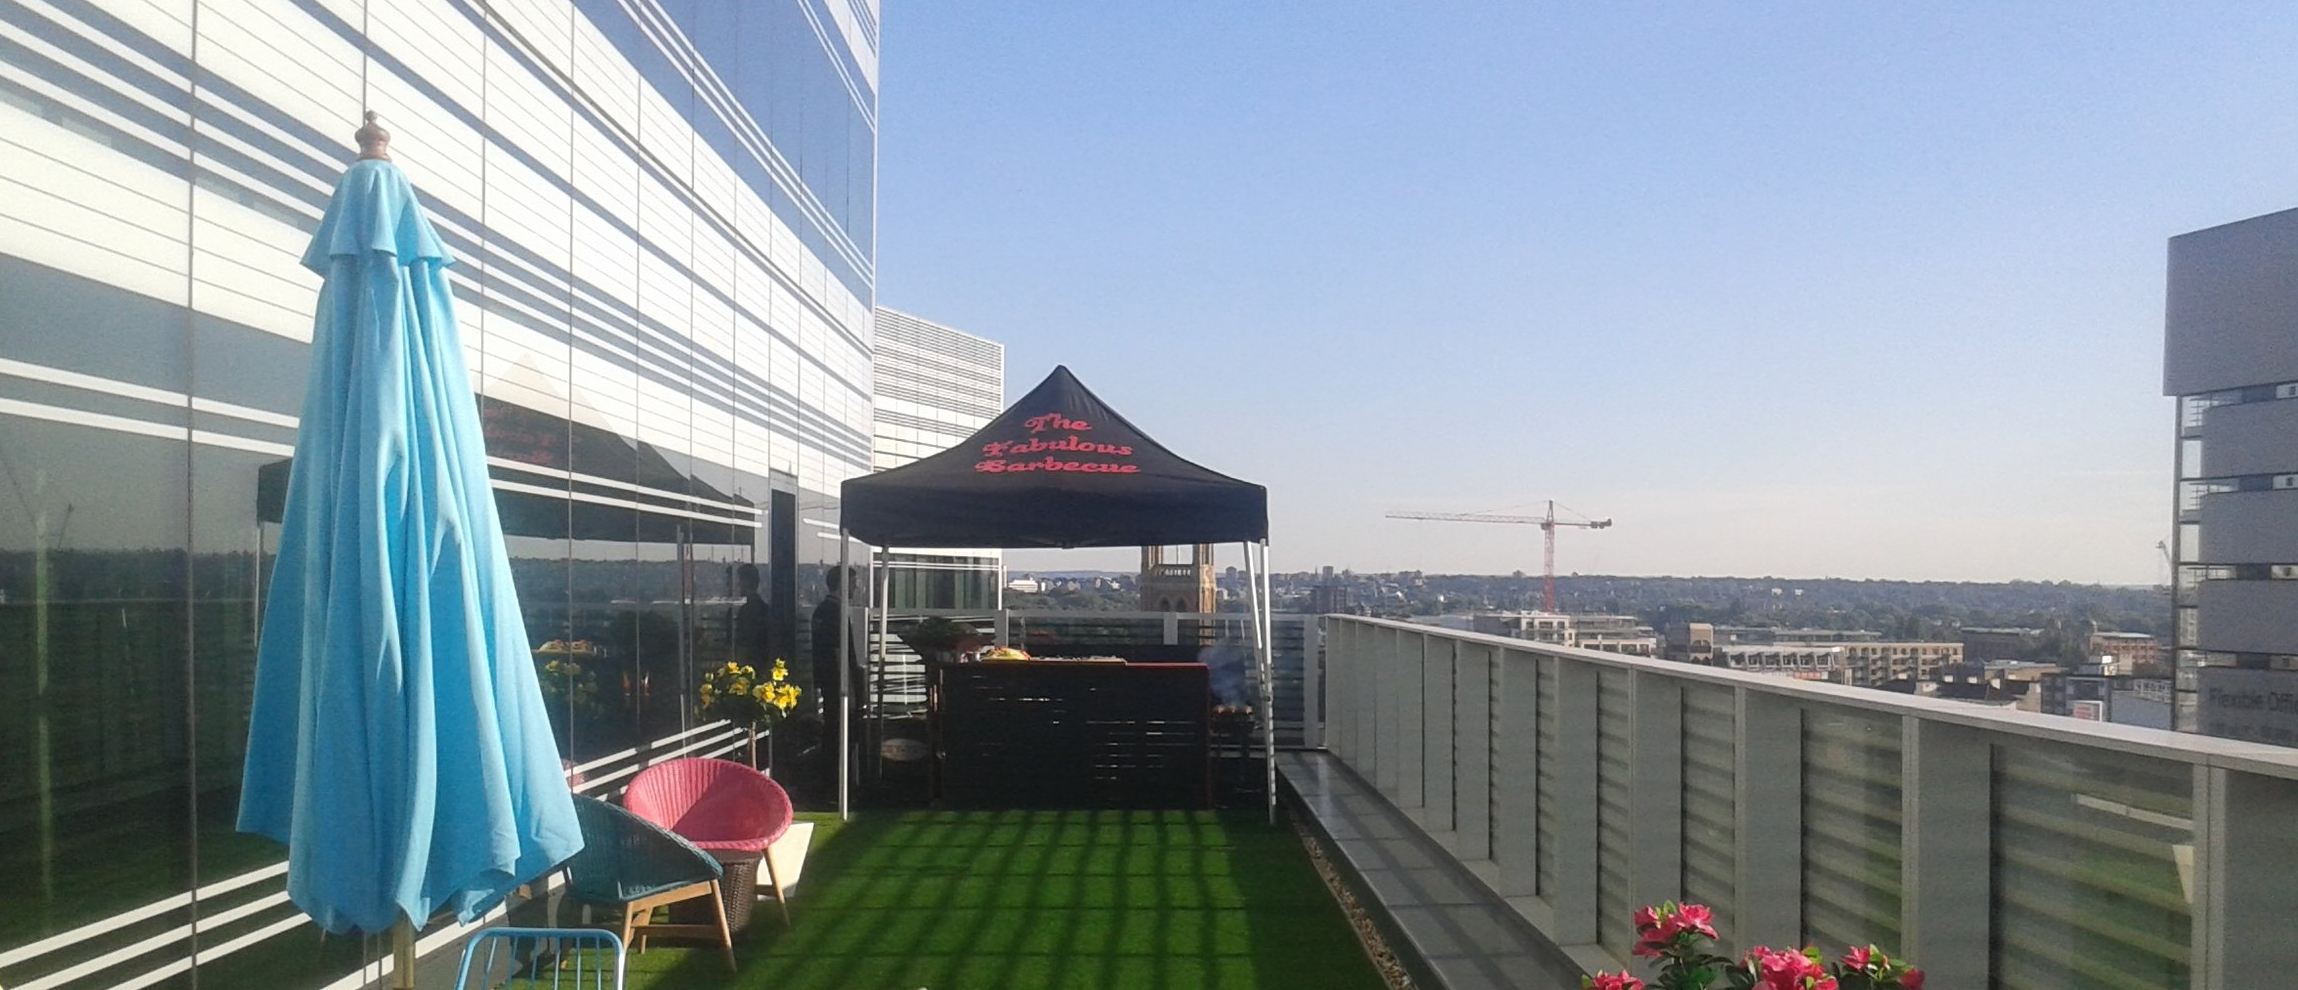 Hammersmith roof terrace event best 1.jpg